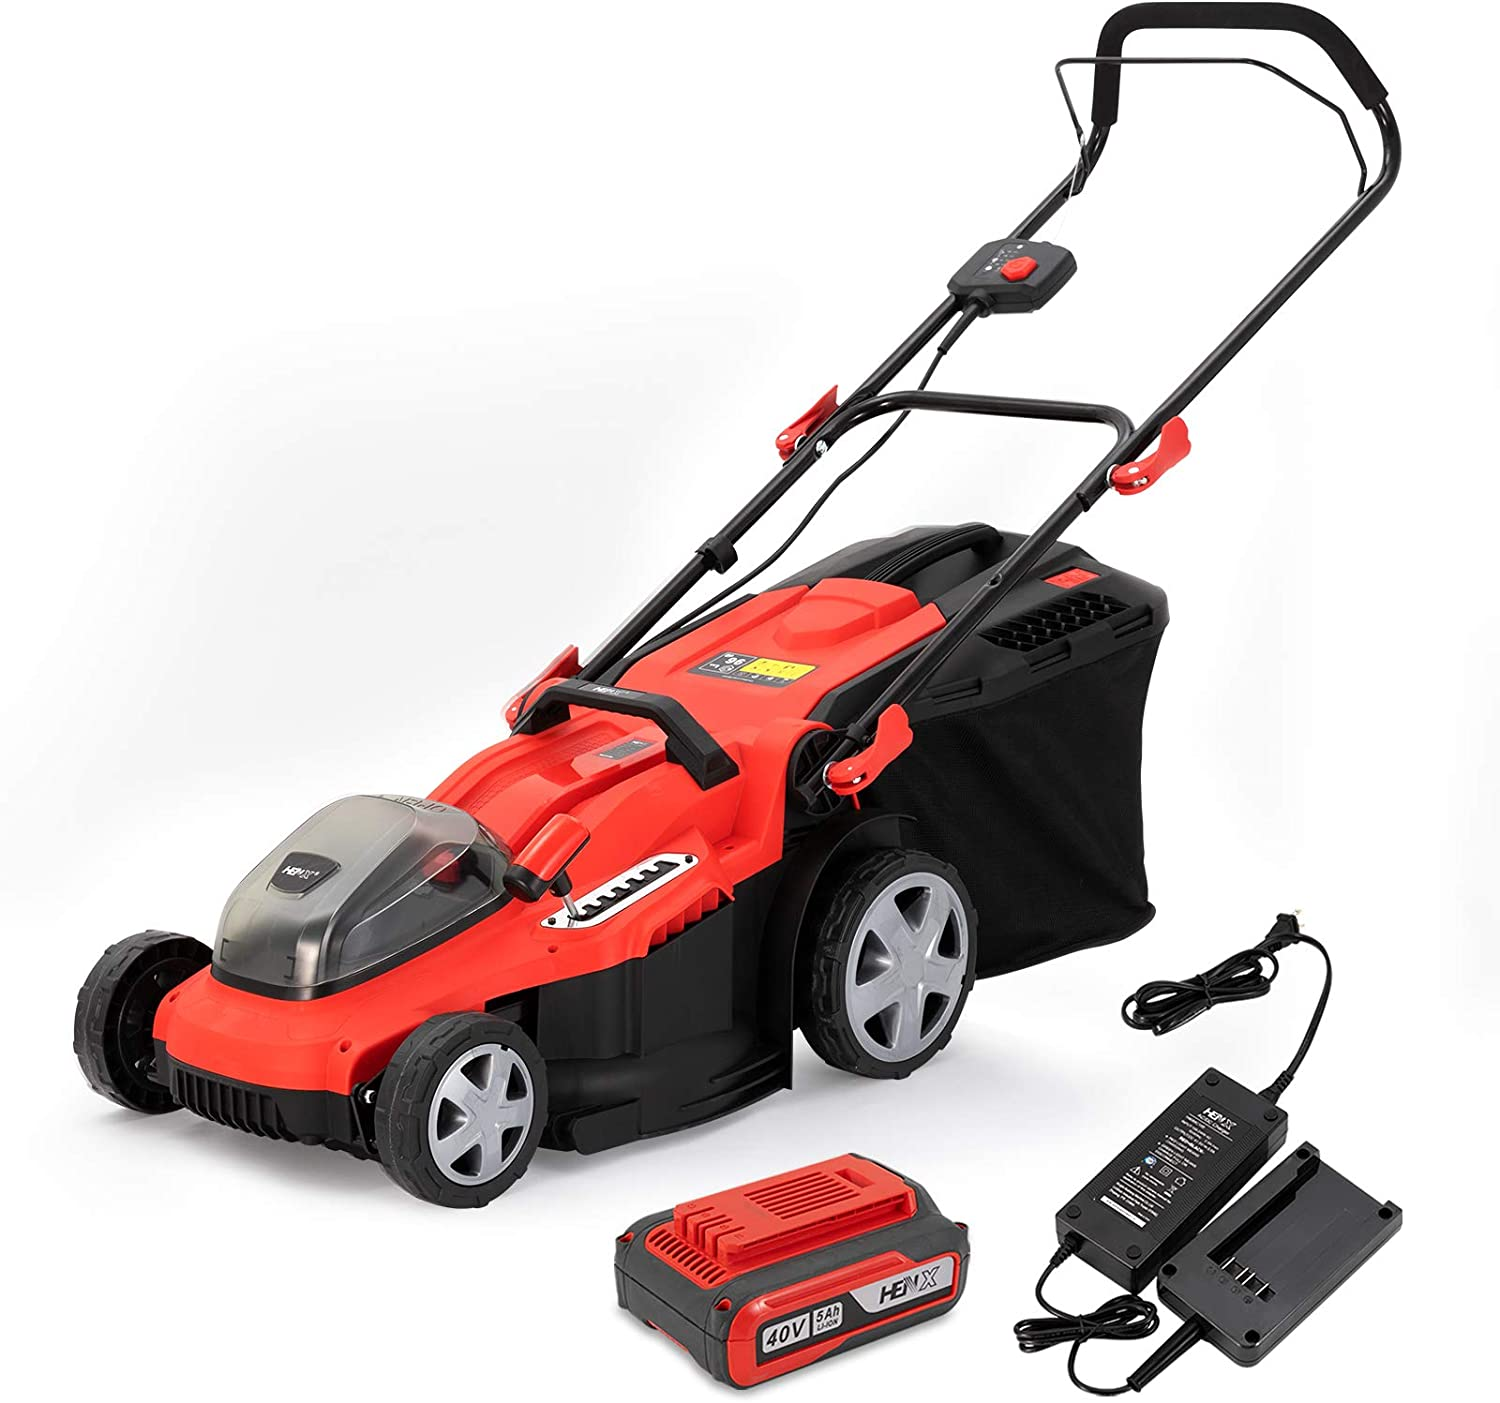 BEST SMALLEST ELECTRIC LAWN MOWER